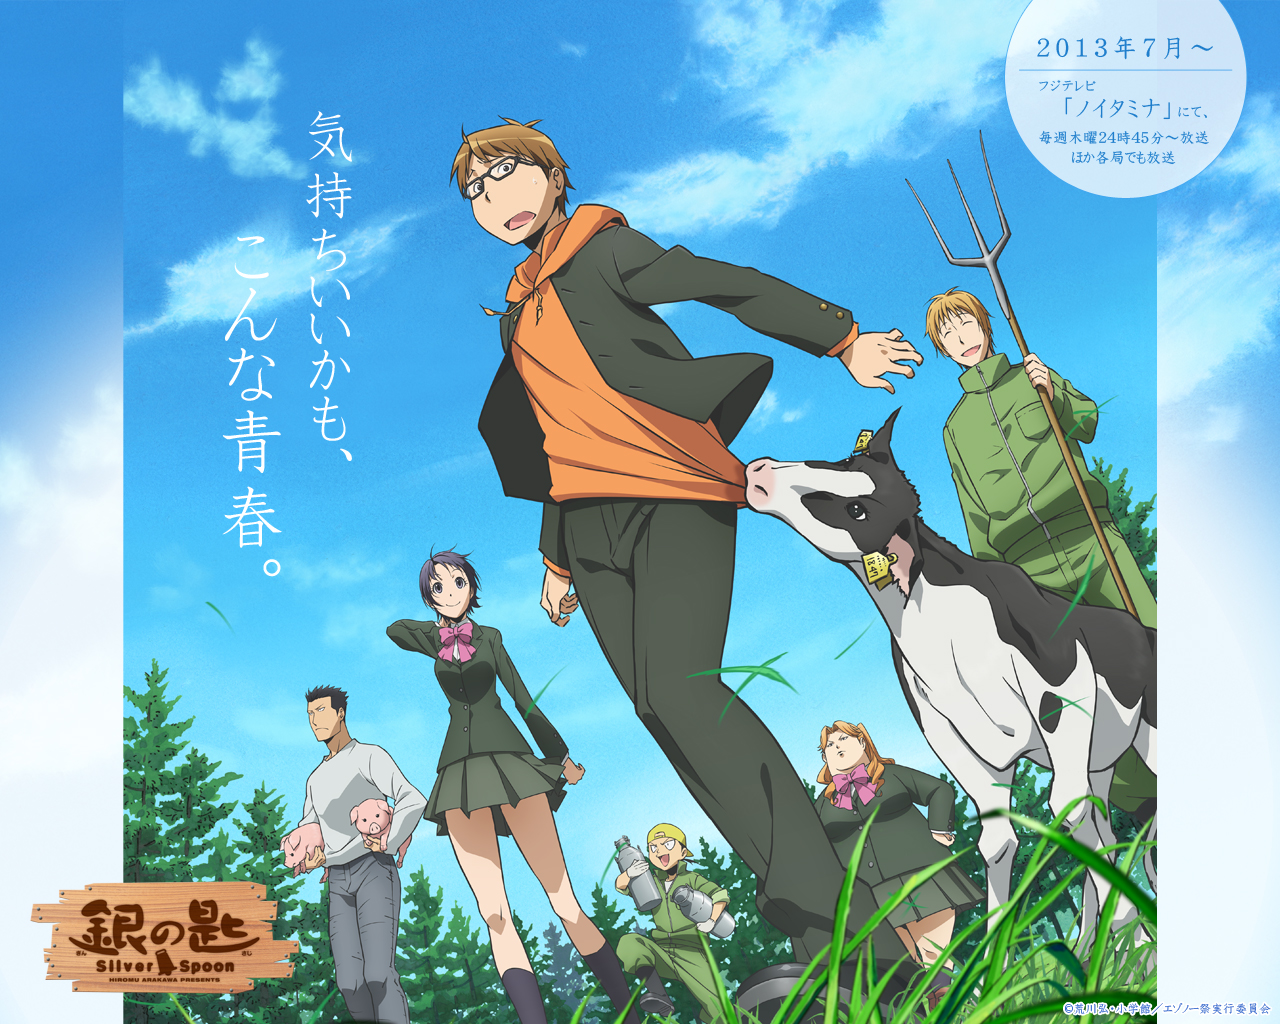 Gin no saji (silver spoon) images Gin no Saji HD wallpaper and ...